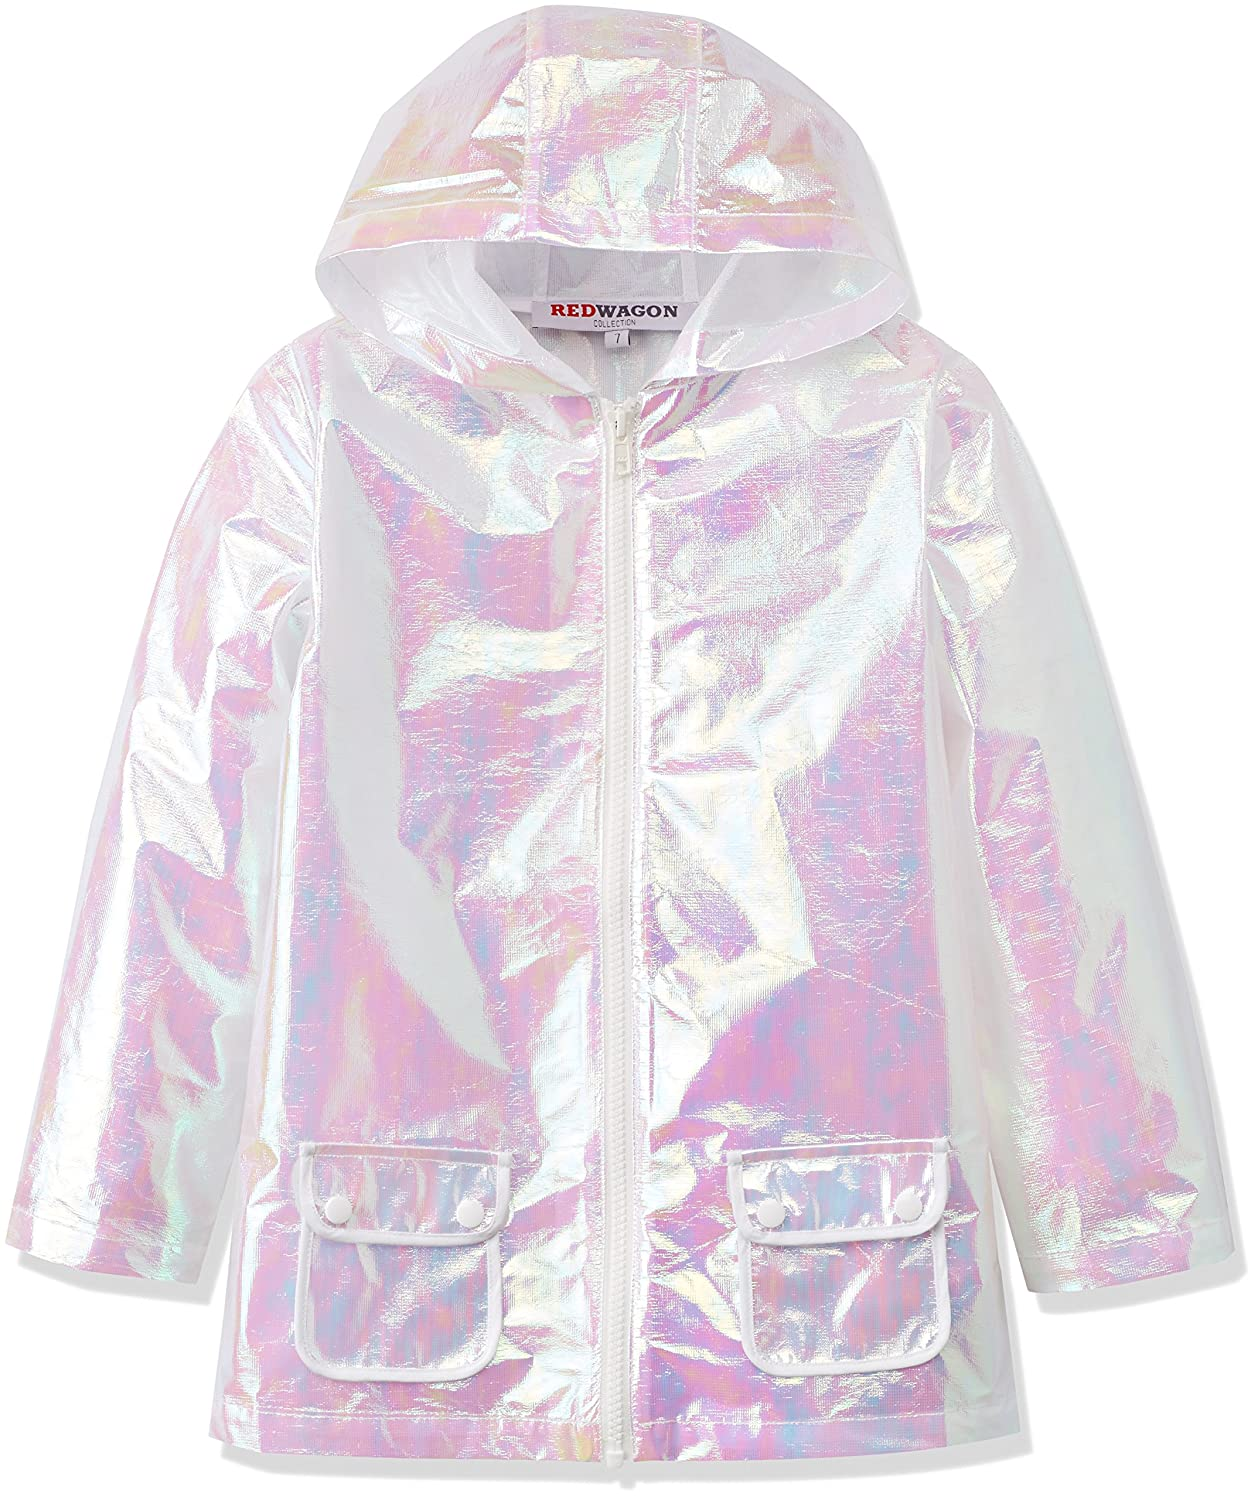 8fff4318d1e4 RED WAGON Girl s Iridescent Light Weight Jacket  Amazon.co.uk  Clothing